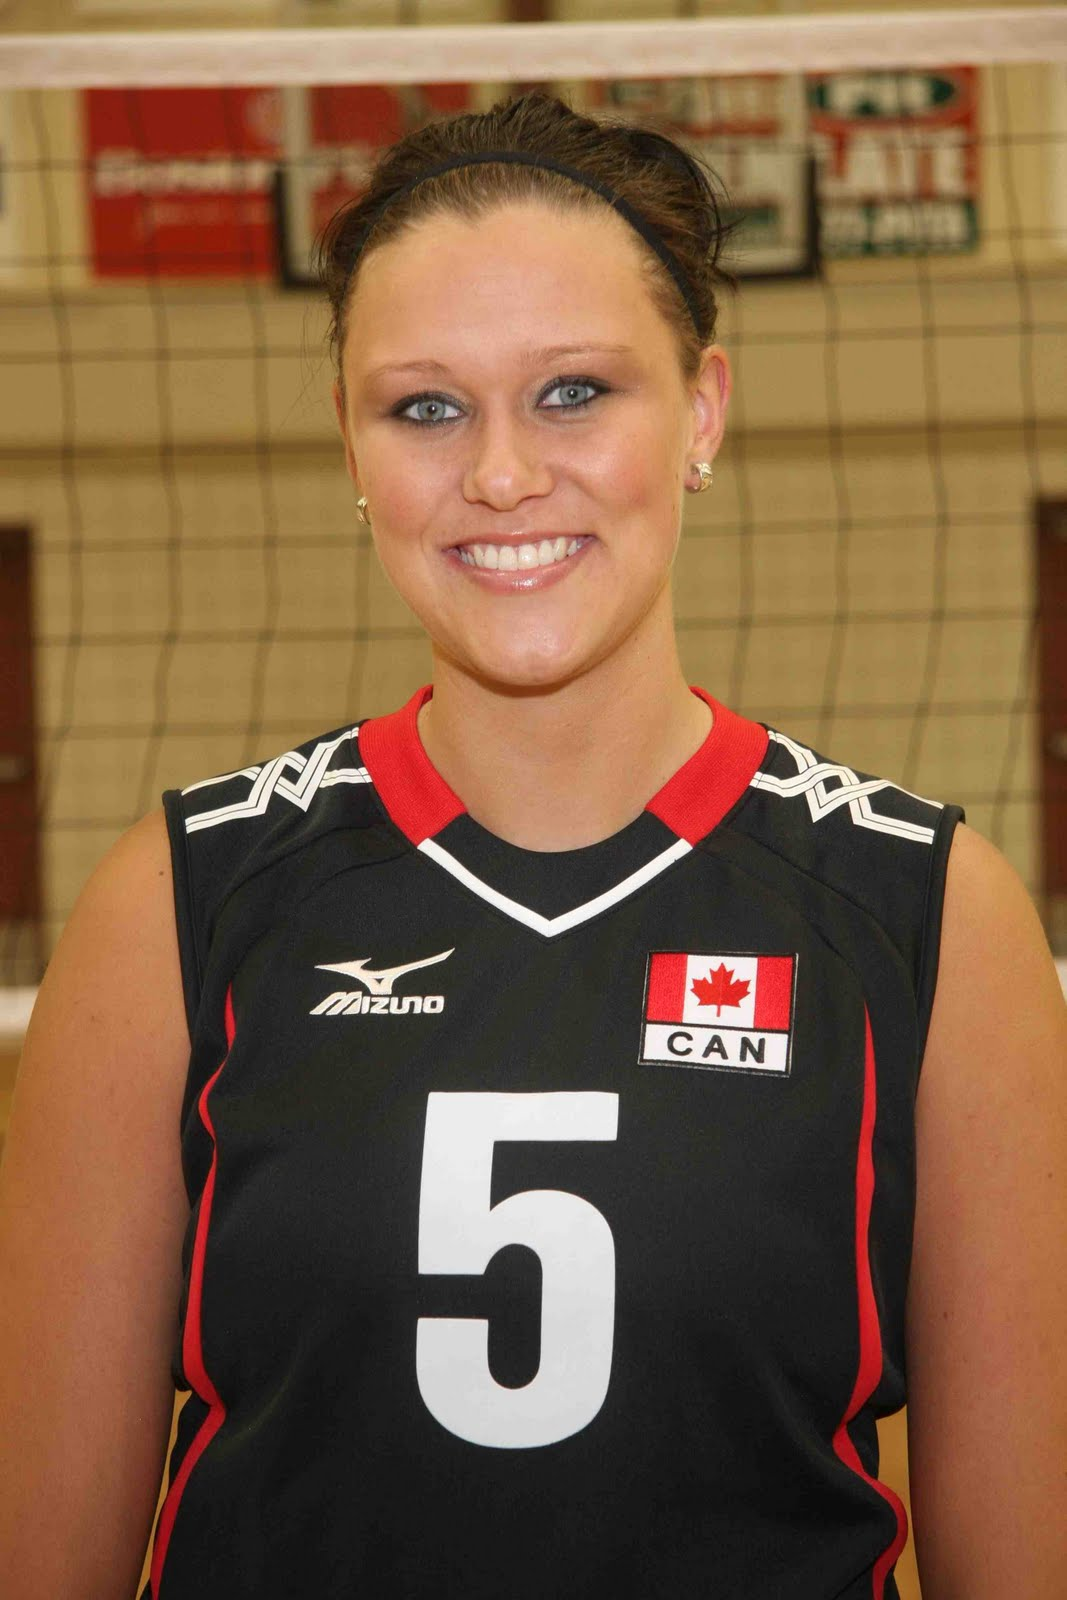 Tiffany Dodds, Team Canada